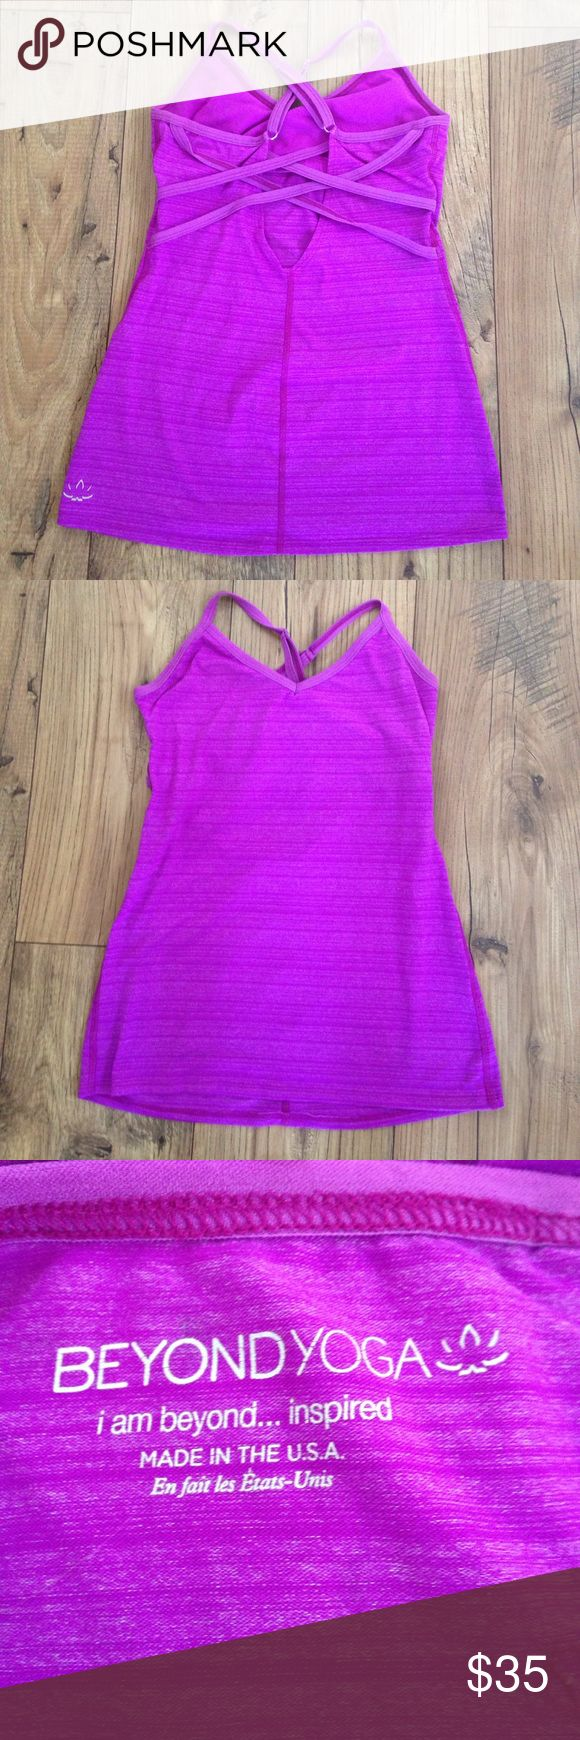 Strappy fuchsia Beyond Yoga tank Very form fitting and had a built in support. Beautiful purple color. Beyond Yoga Tops Tank Tops